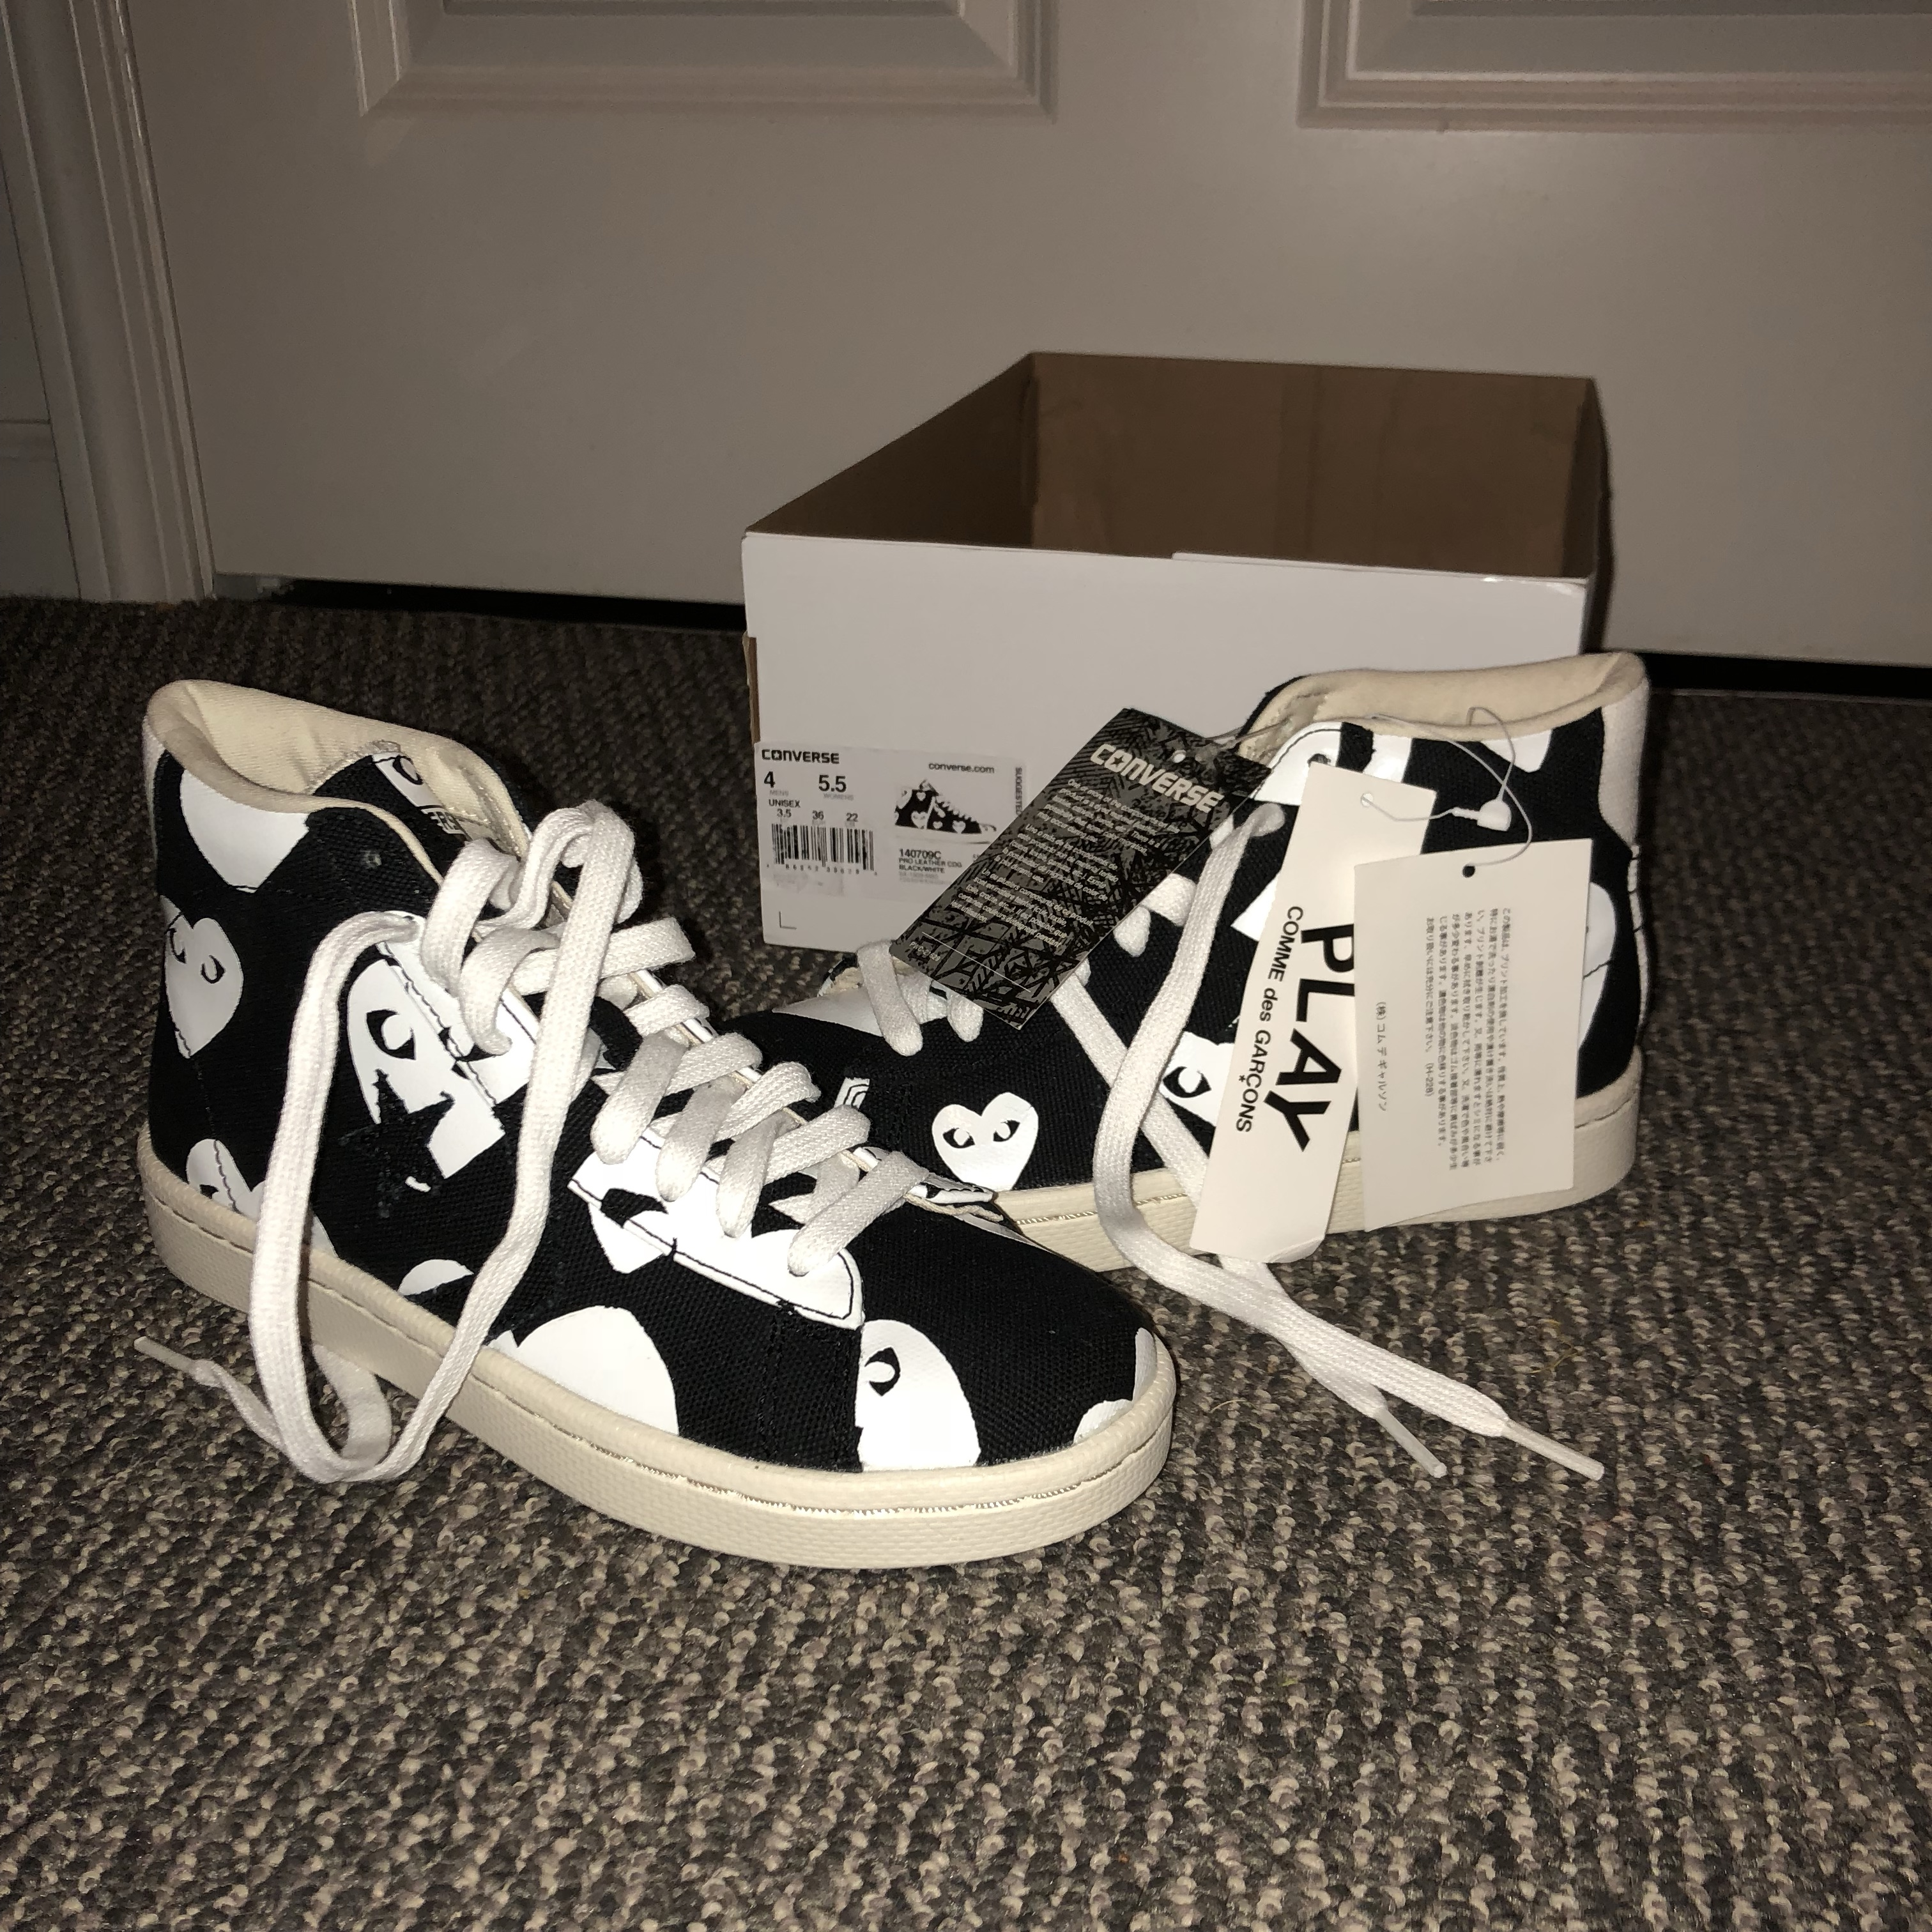 Converse Pro Leather CDG in Black/White